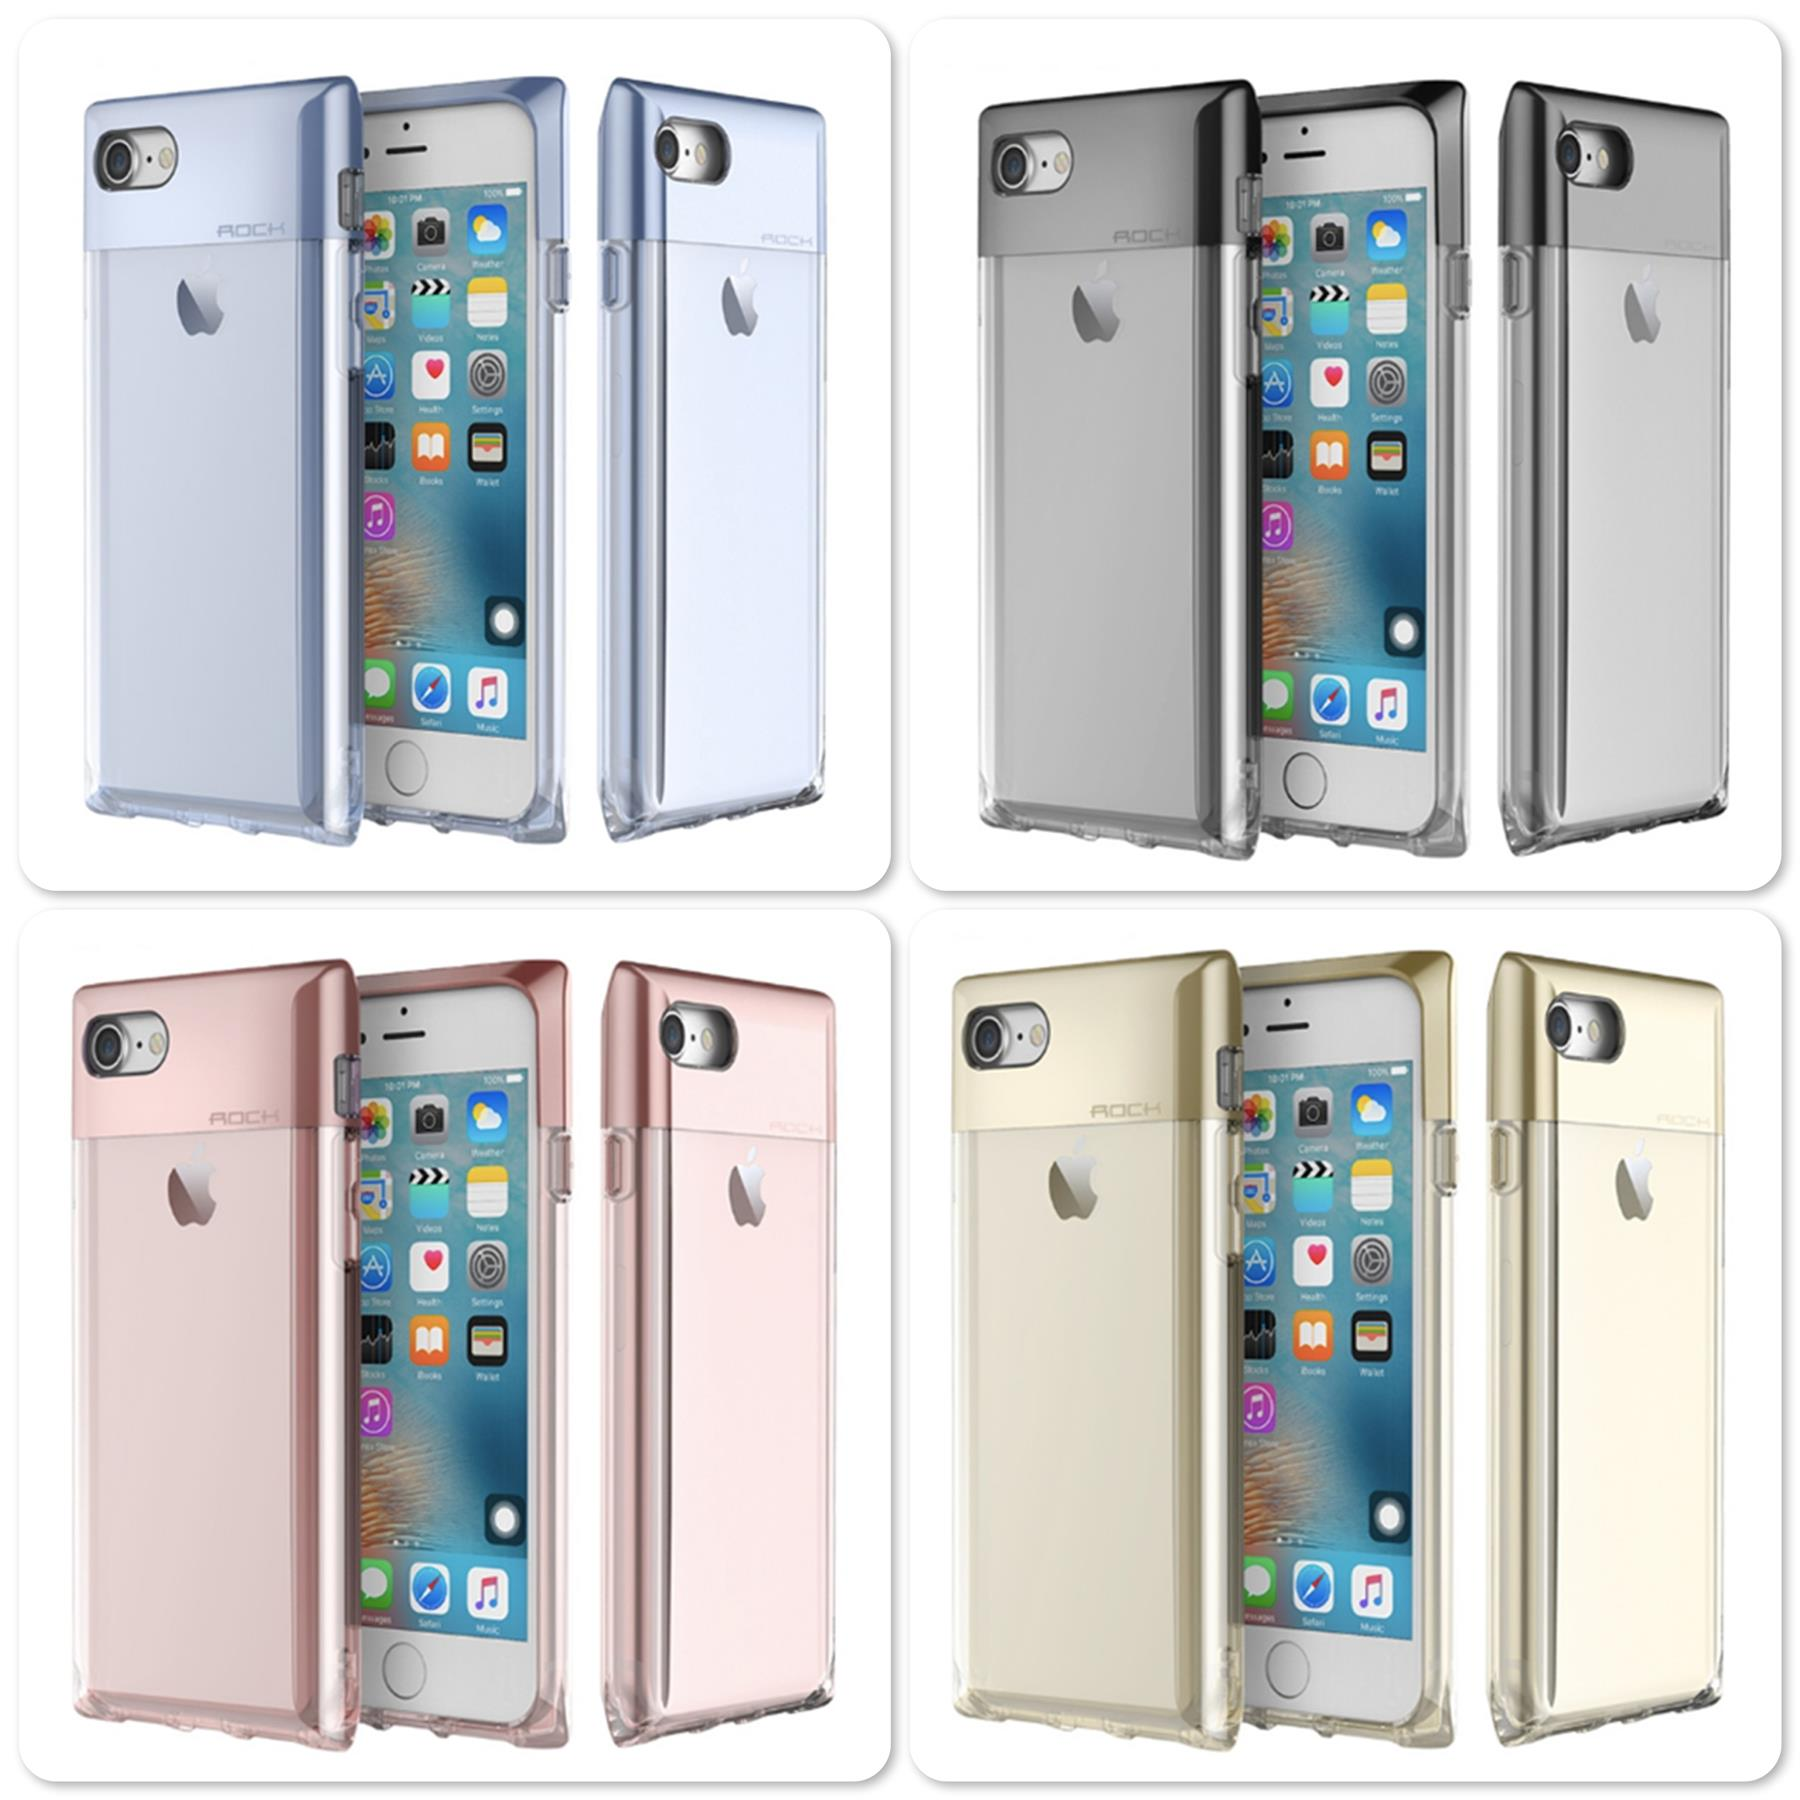 Apple iPhone 7 Rock Space Crystal series Protective Case